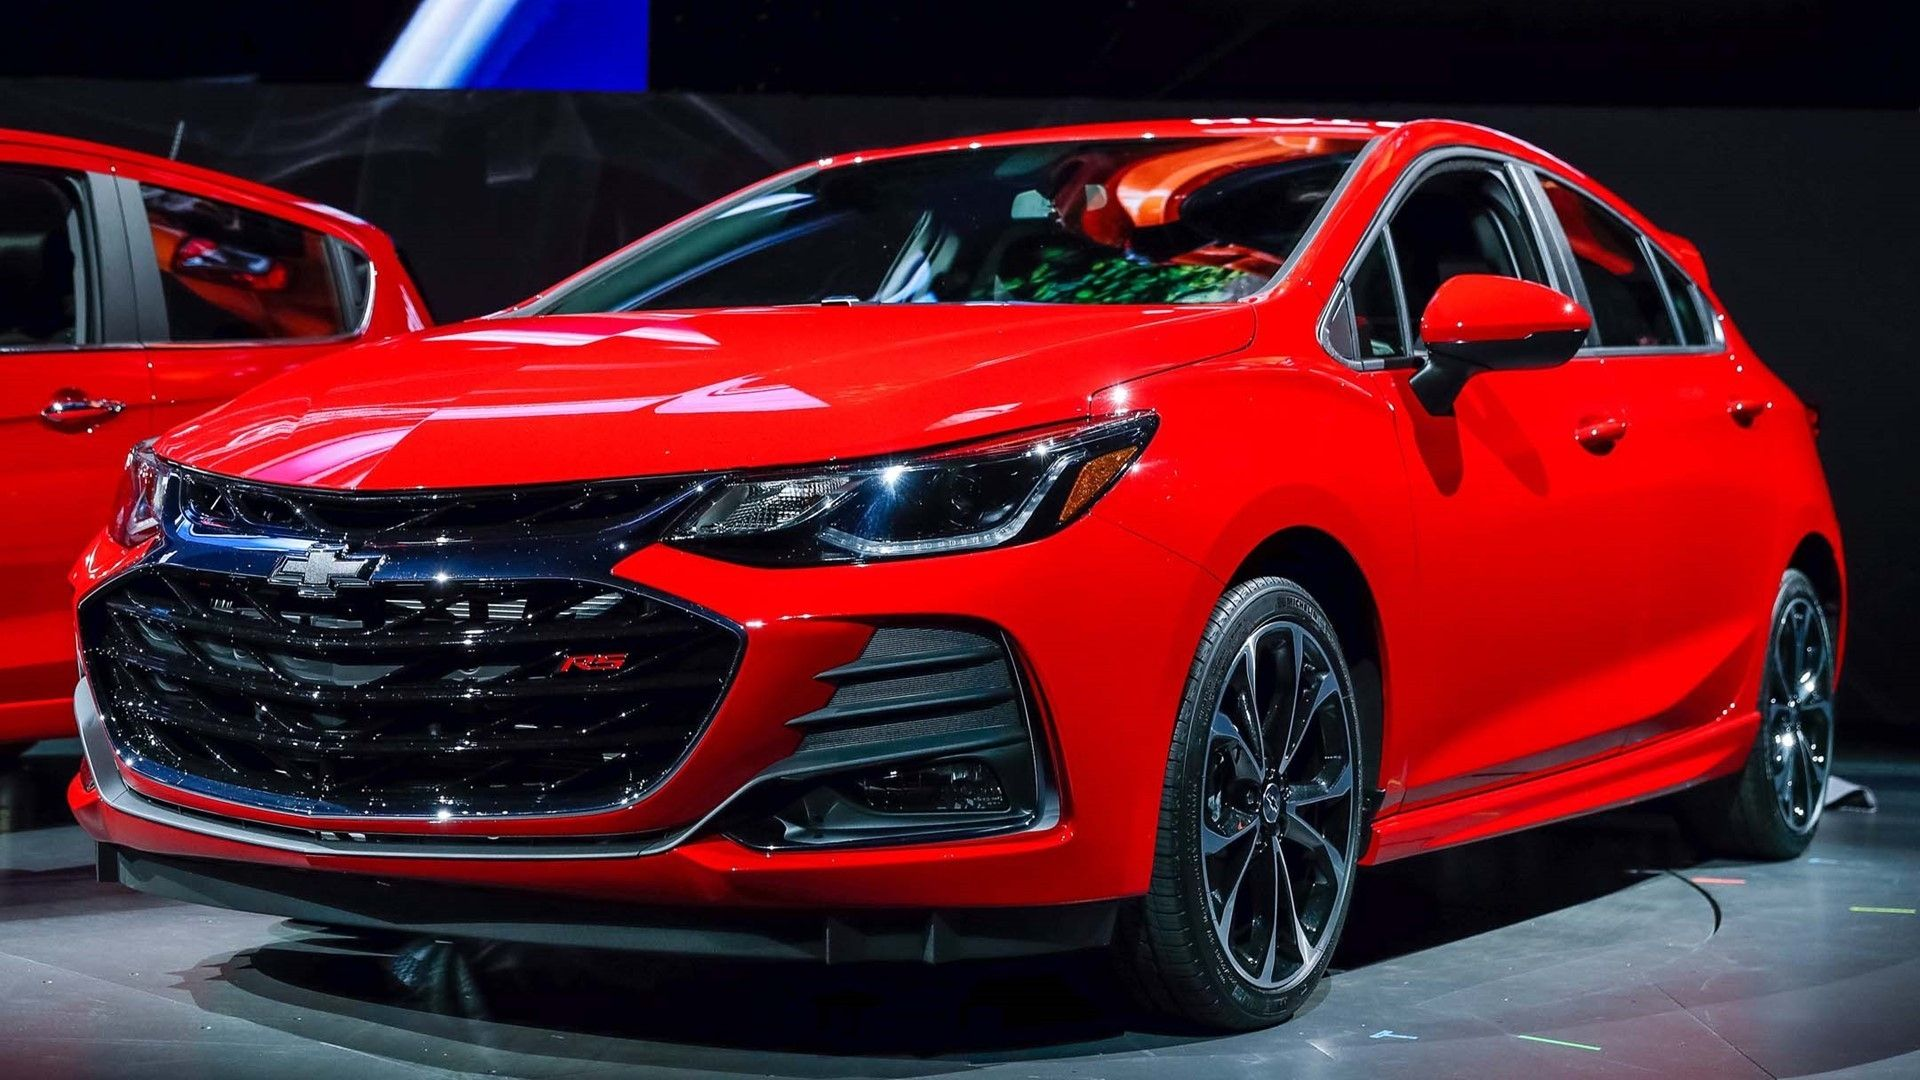 2019 Chevrolet Spark Review and Specs